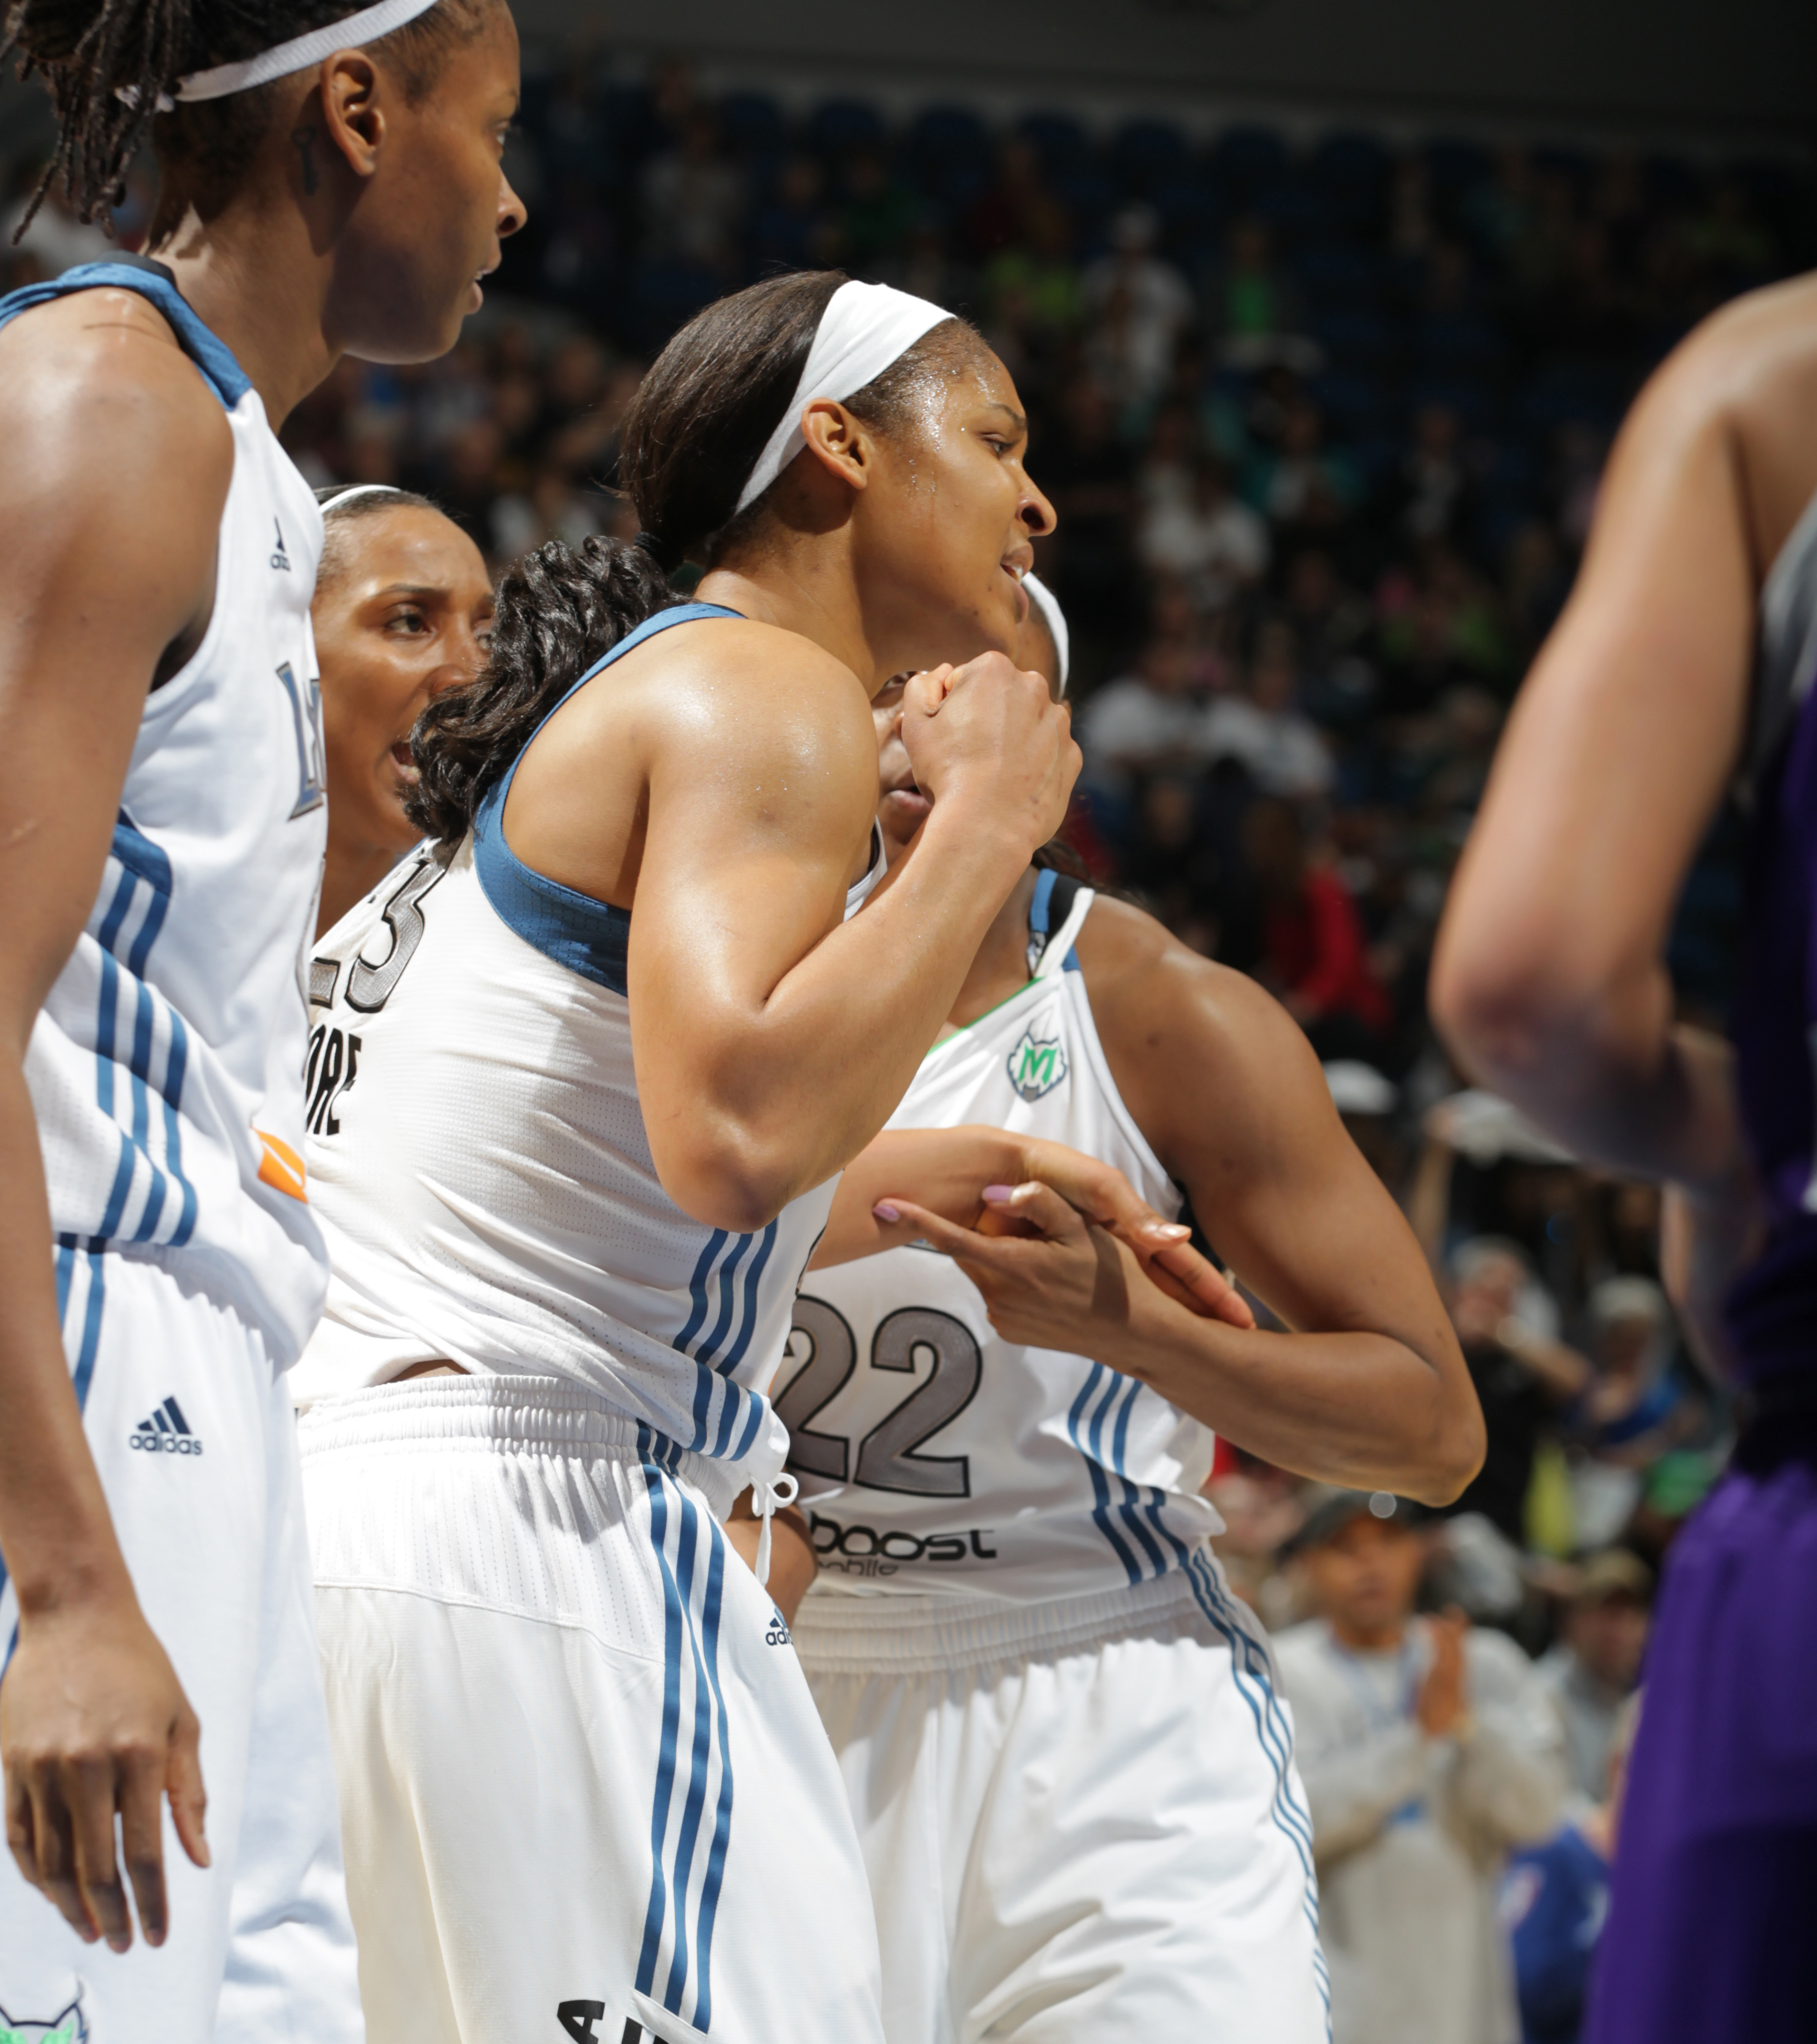 2012's Home-Opener: Lynx forward Maya Moore definitely pumped up her team that night scoring 13 points to go with her four rebounds, four assists and two steals.